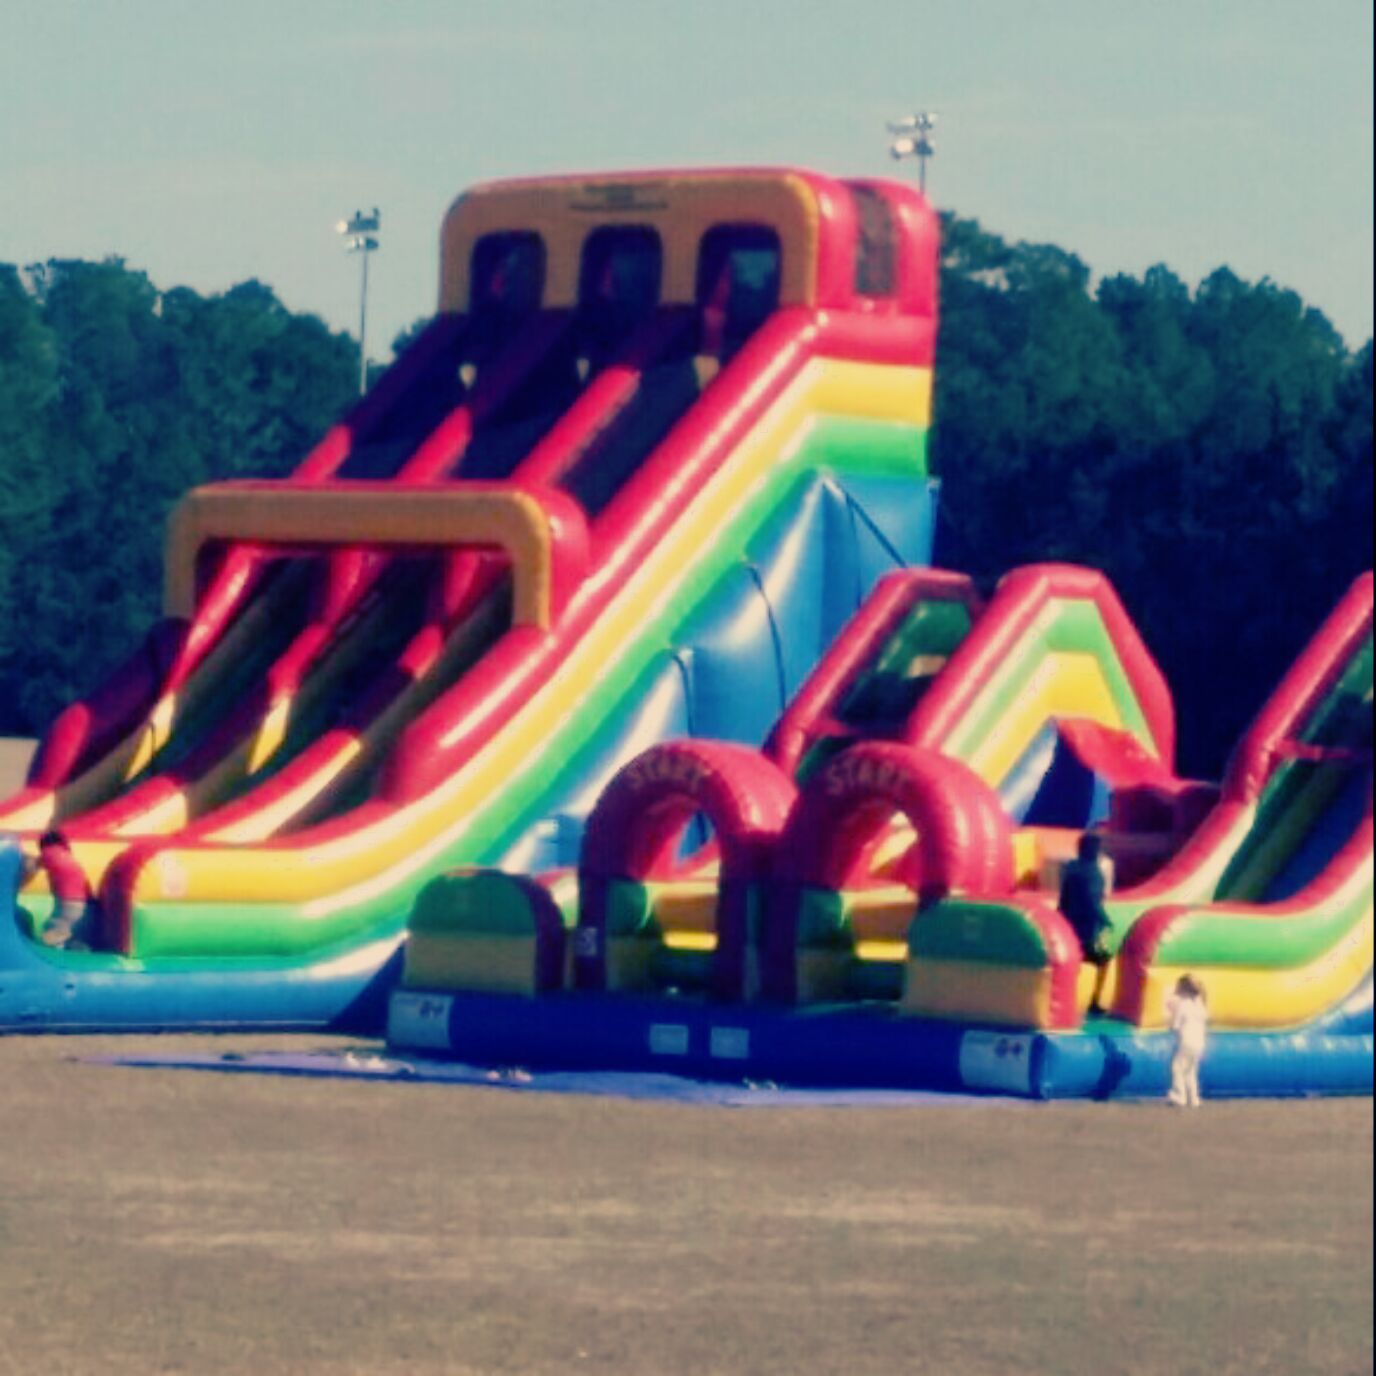 Inflatable Slide Rental Jacksonville Fl: Bounce-A-Roo FUN, Jacksonville Florida (FL